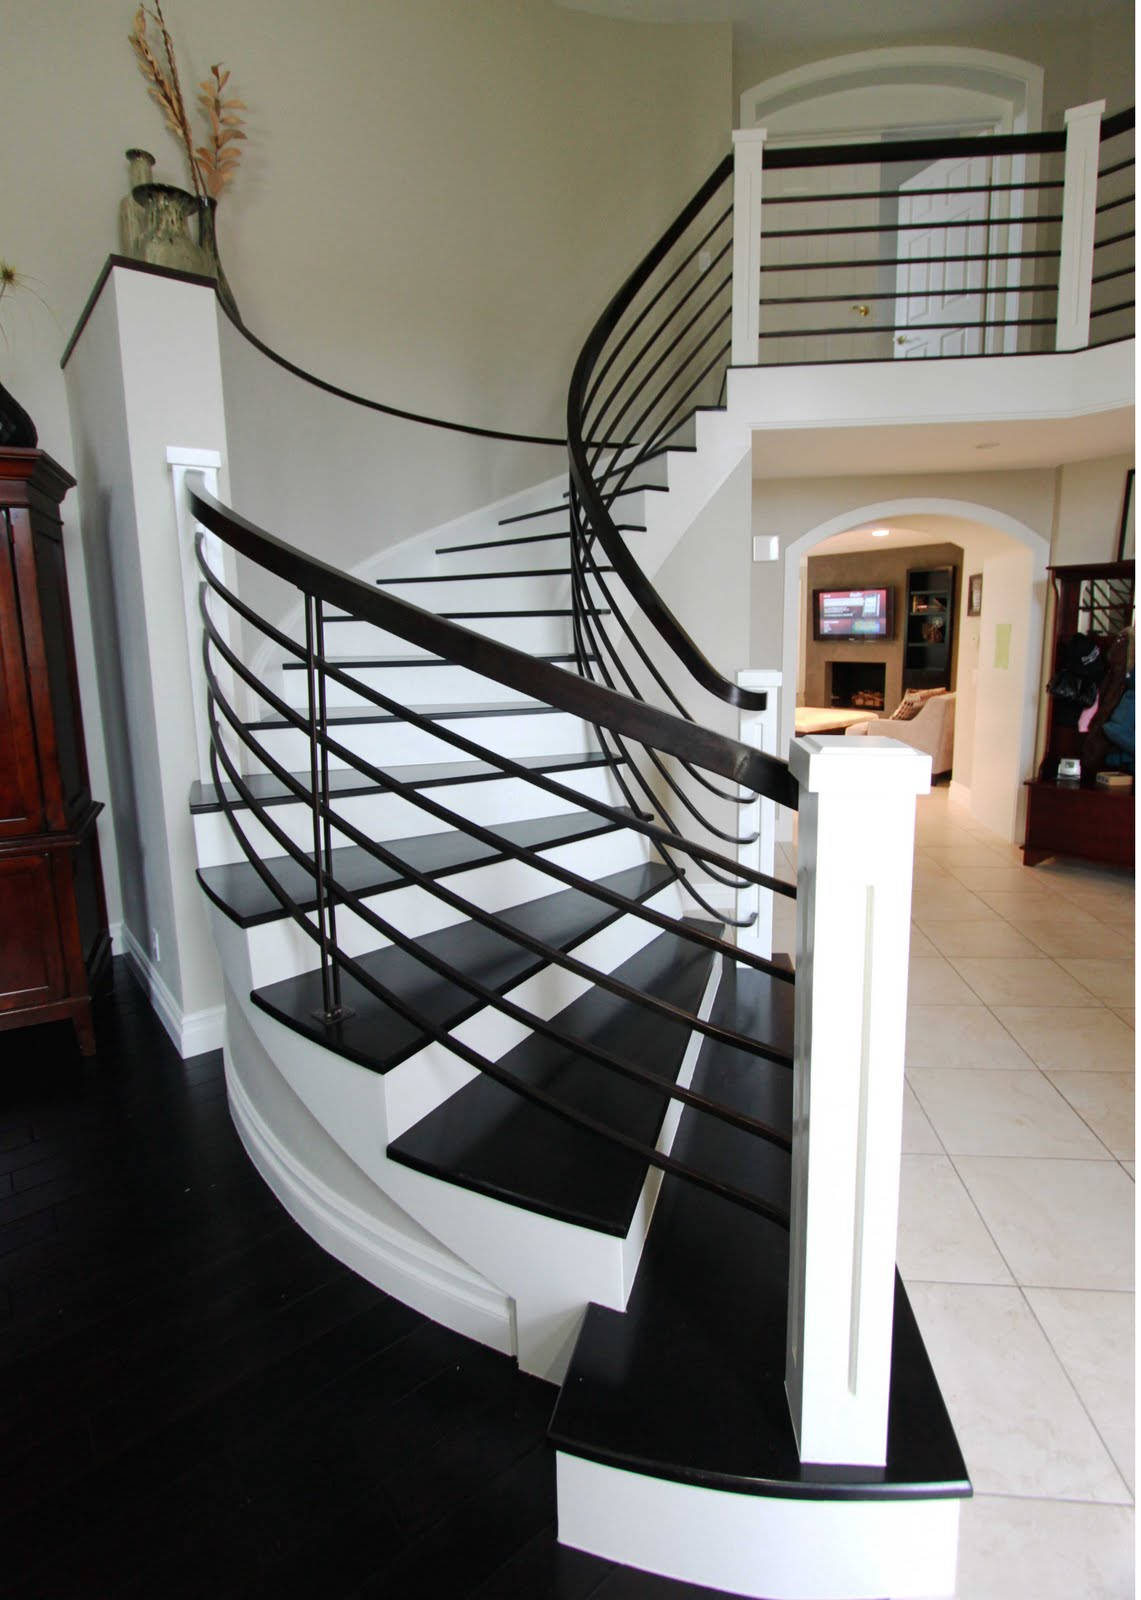 Stiles fischer interior design stairway to heaven for Stair designs interior